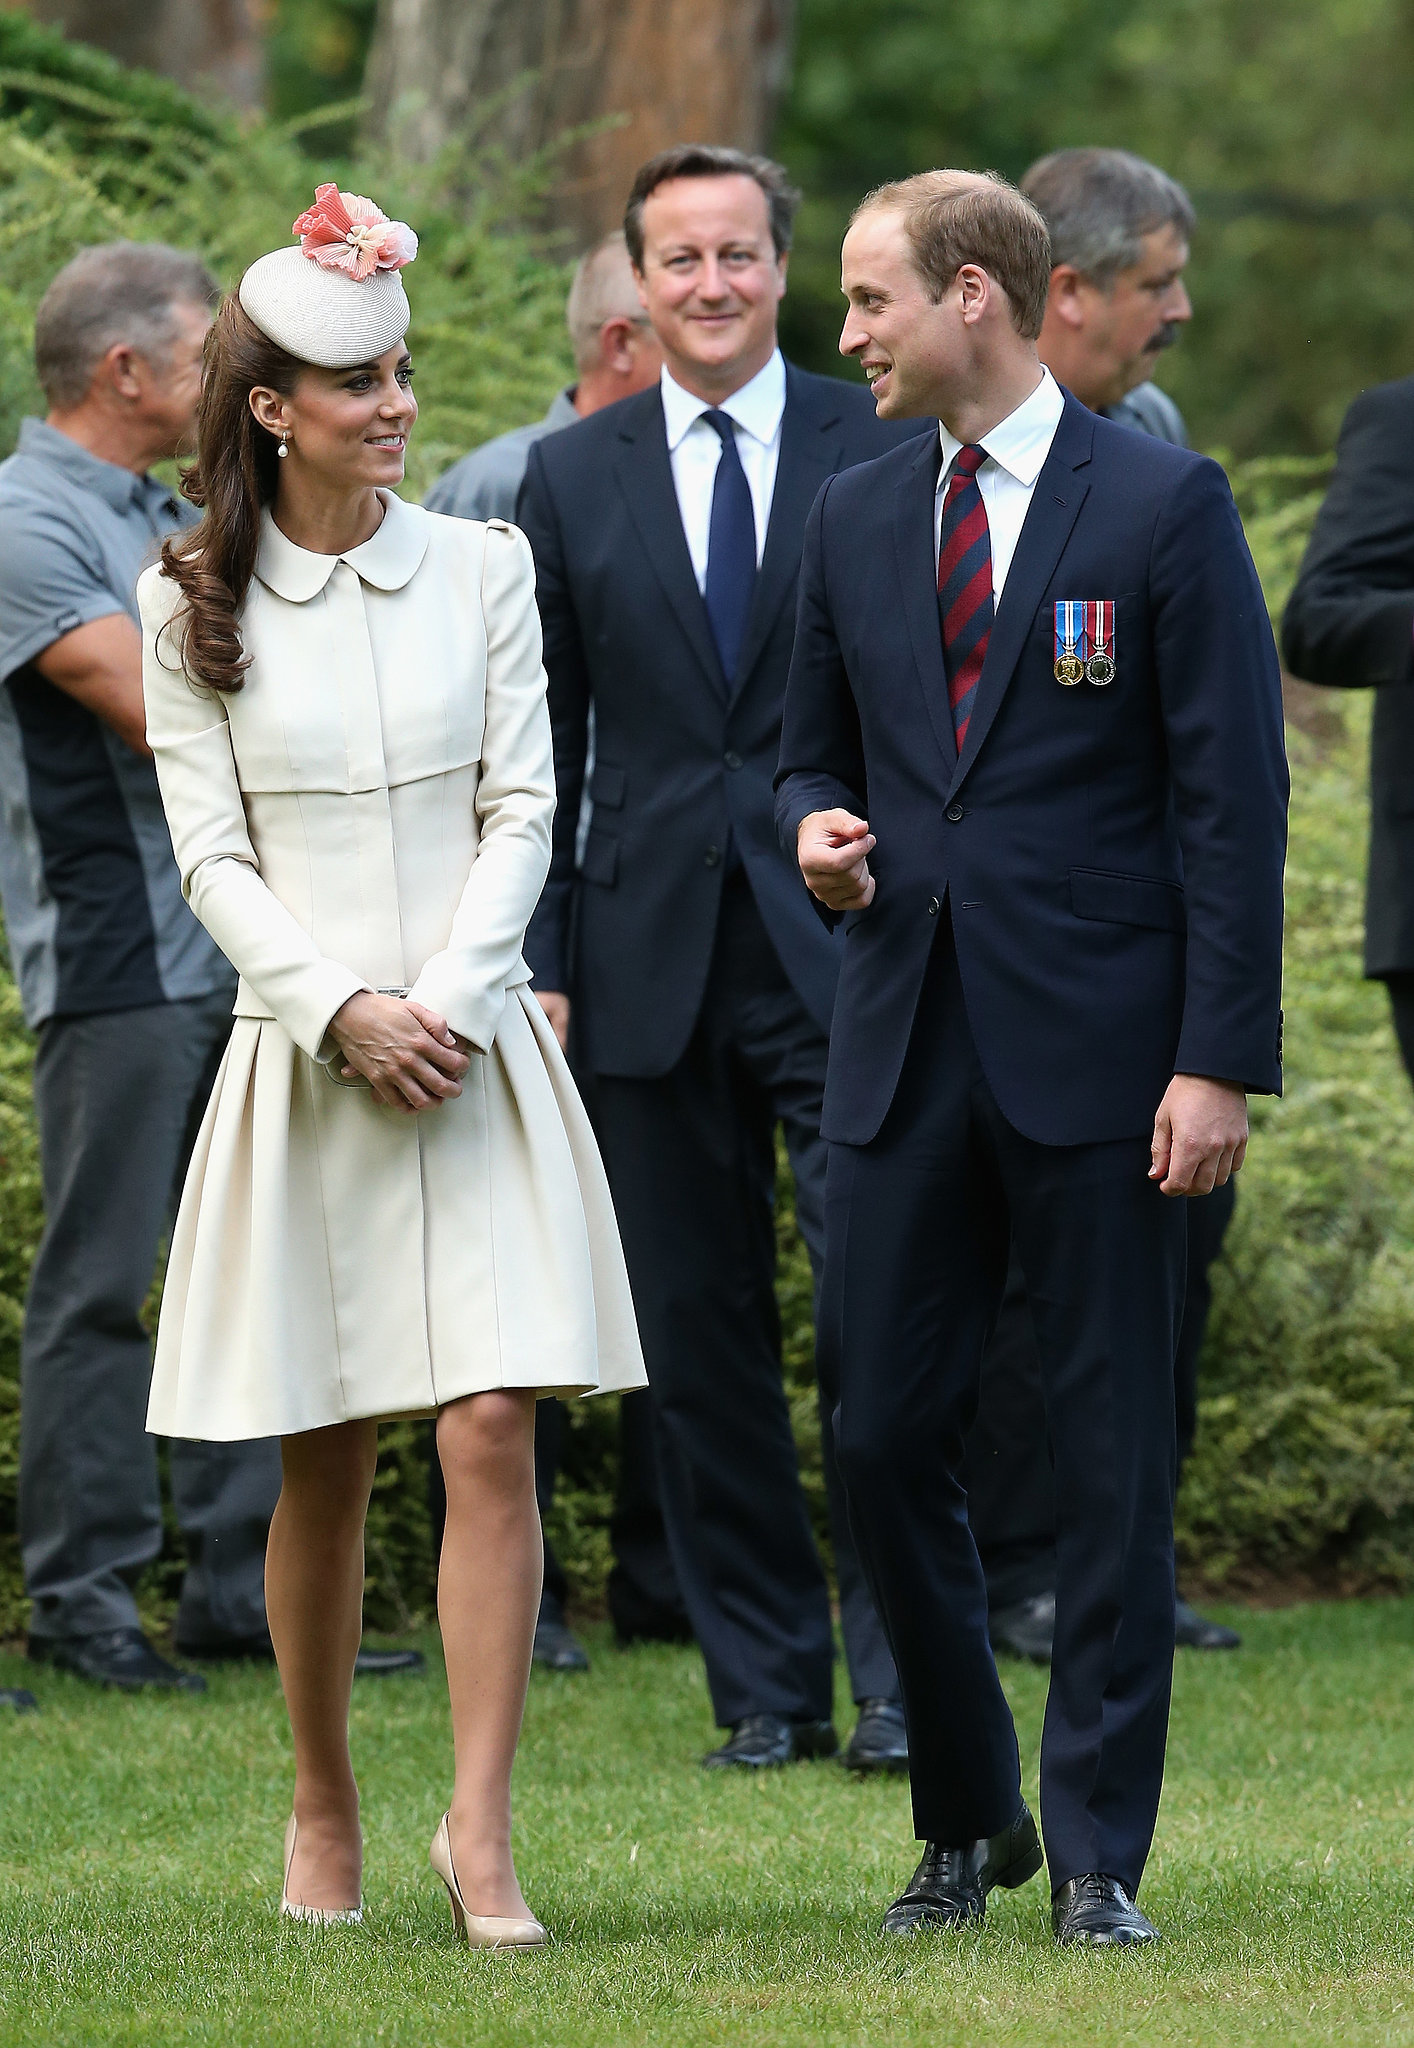 Kate Middleton at St. Symphorien Military Cemetery